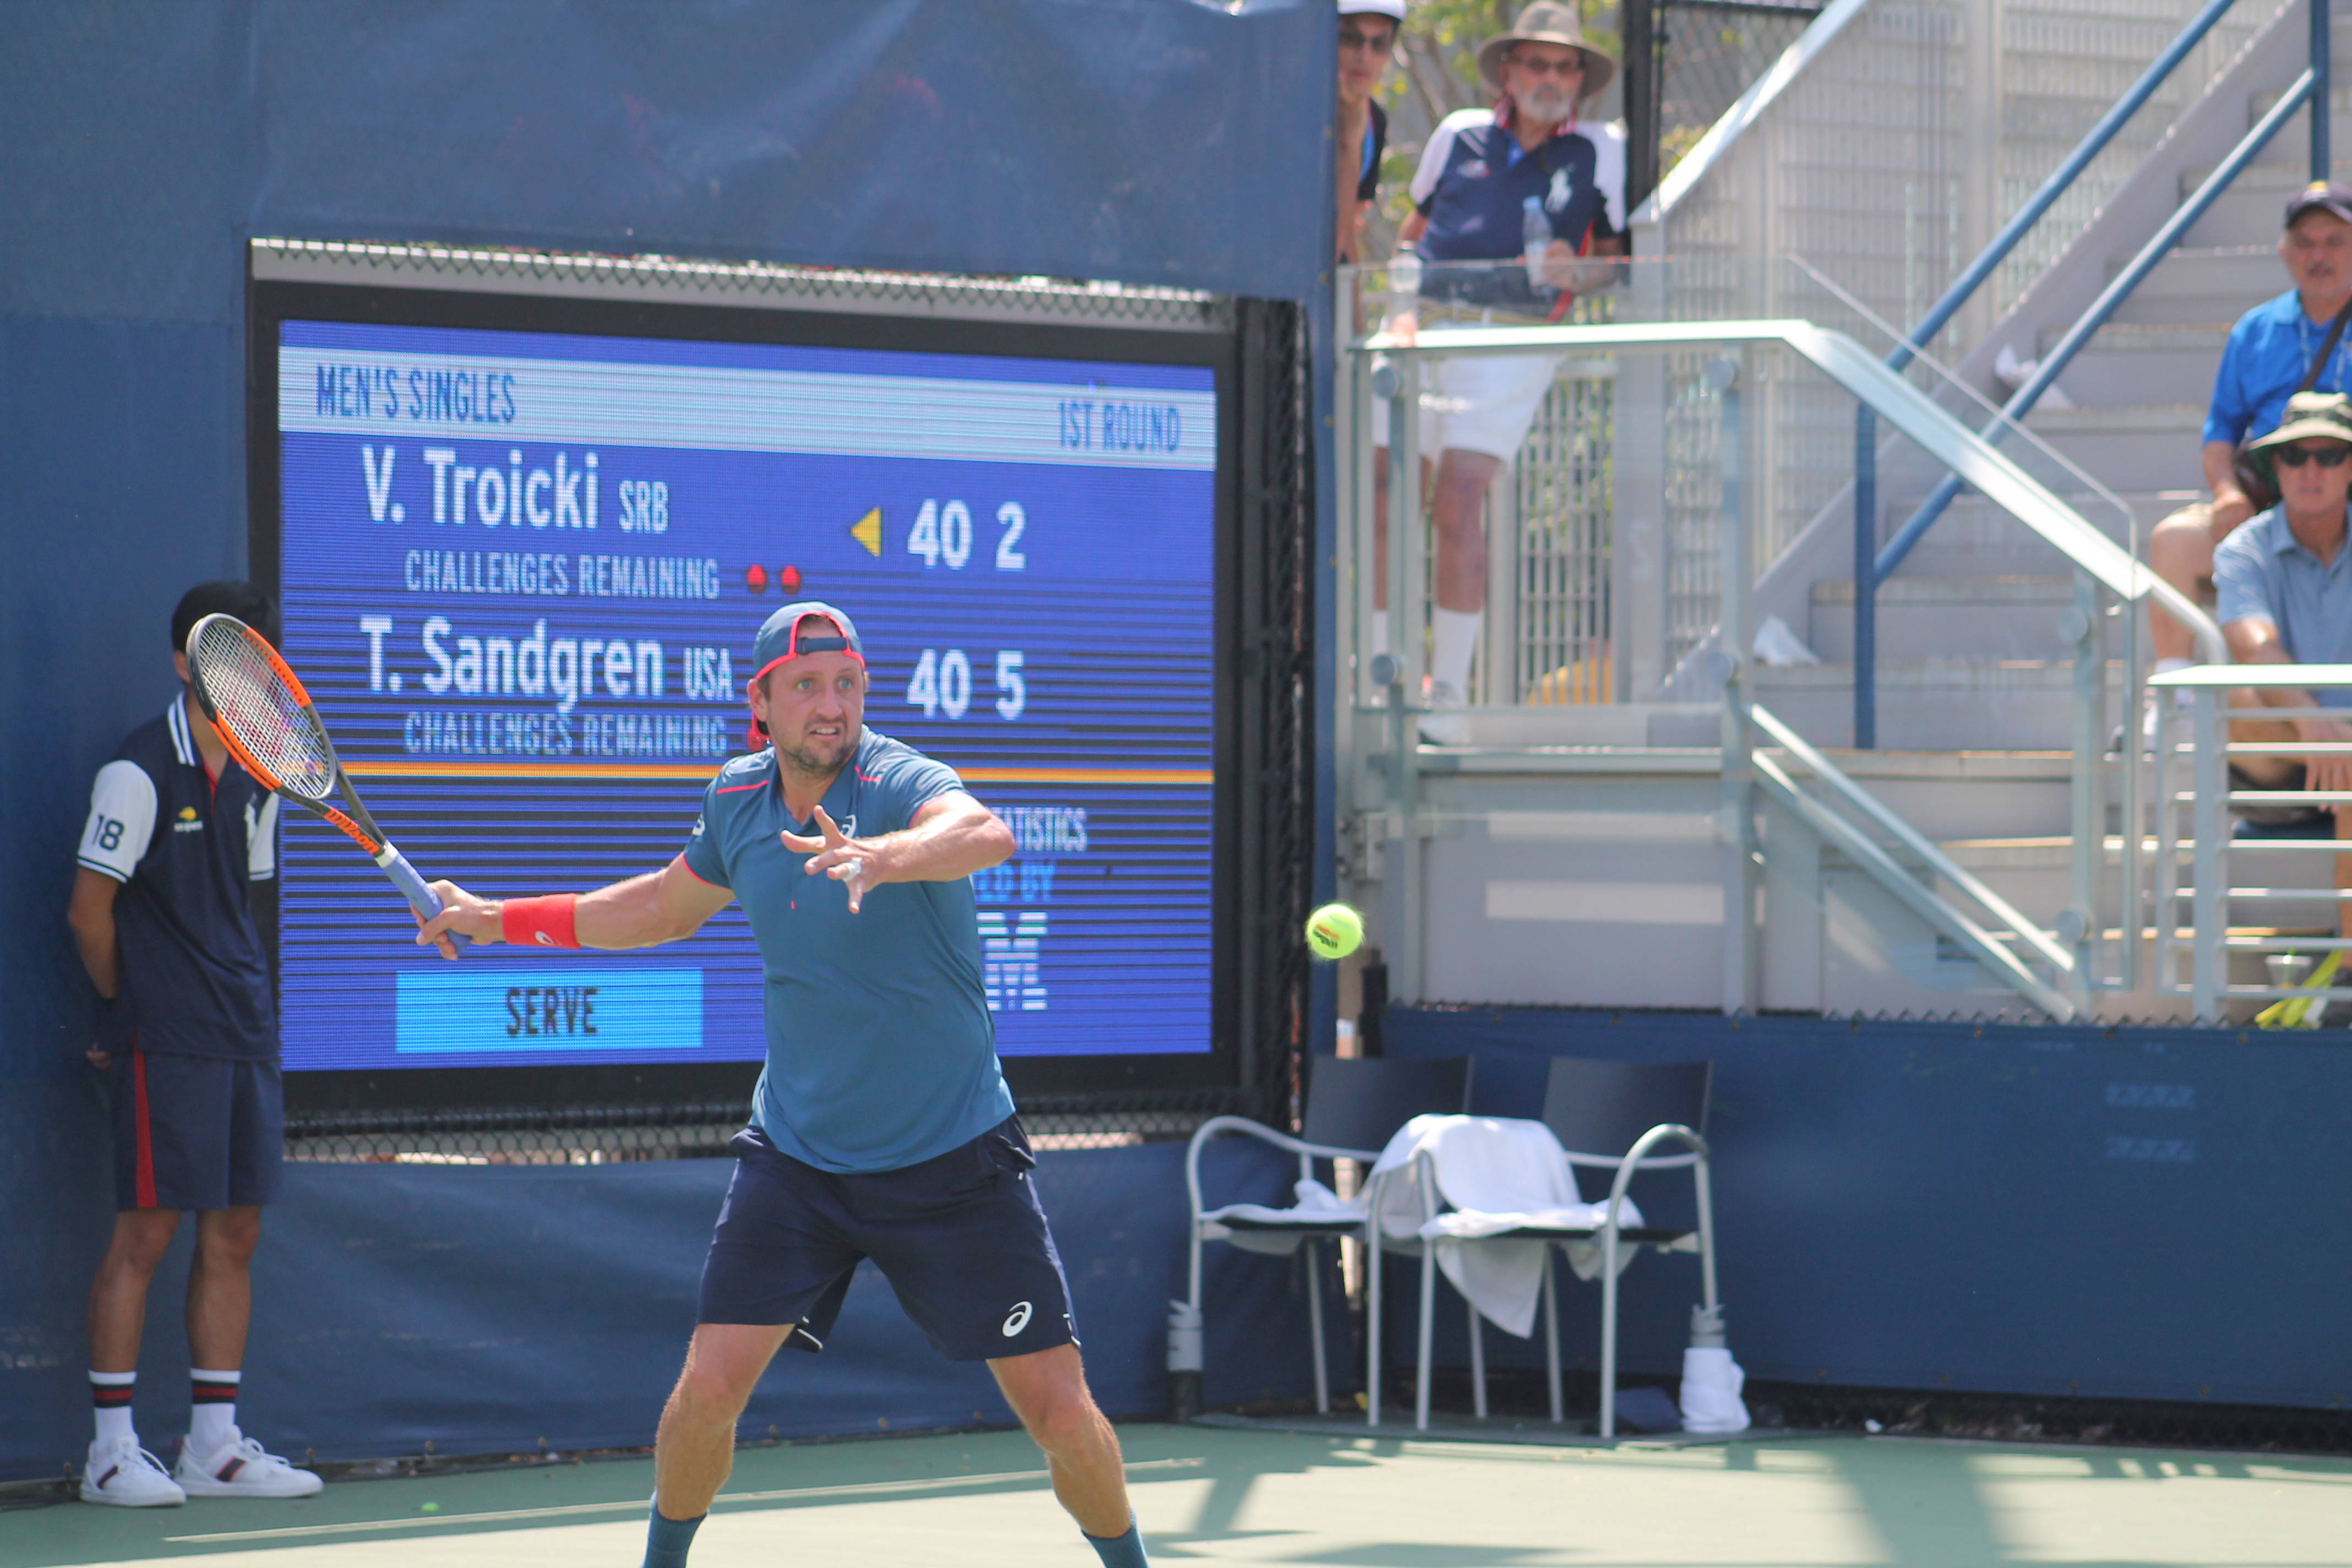 In opening round action at the 2018 U.S. Open, American Tennys Sandgren notched an impressive 6-3, 6-4, 6-2 victory over Serbia's Viktor Troicki